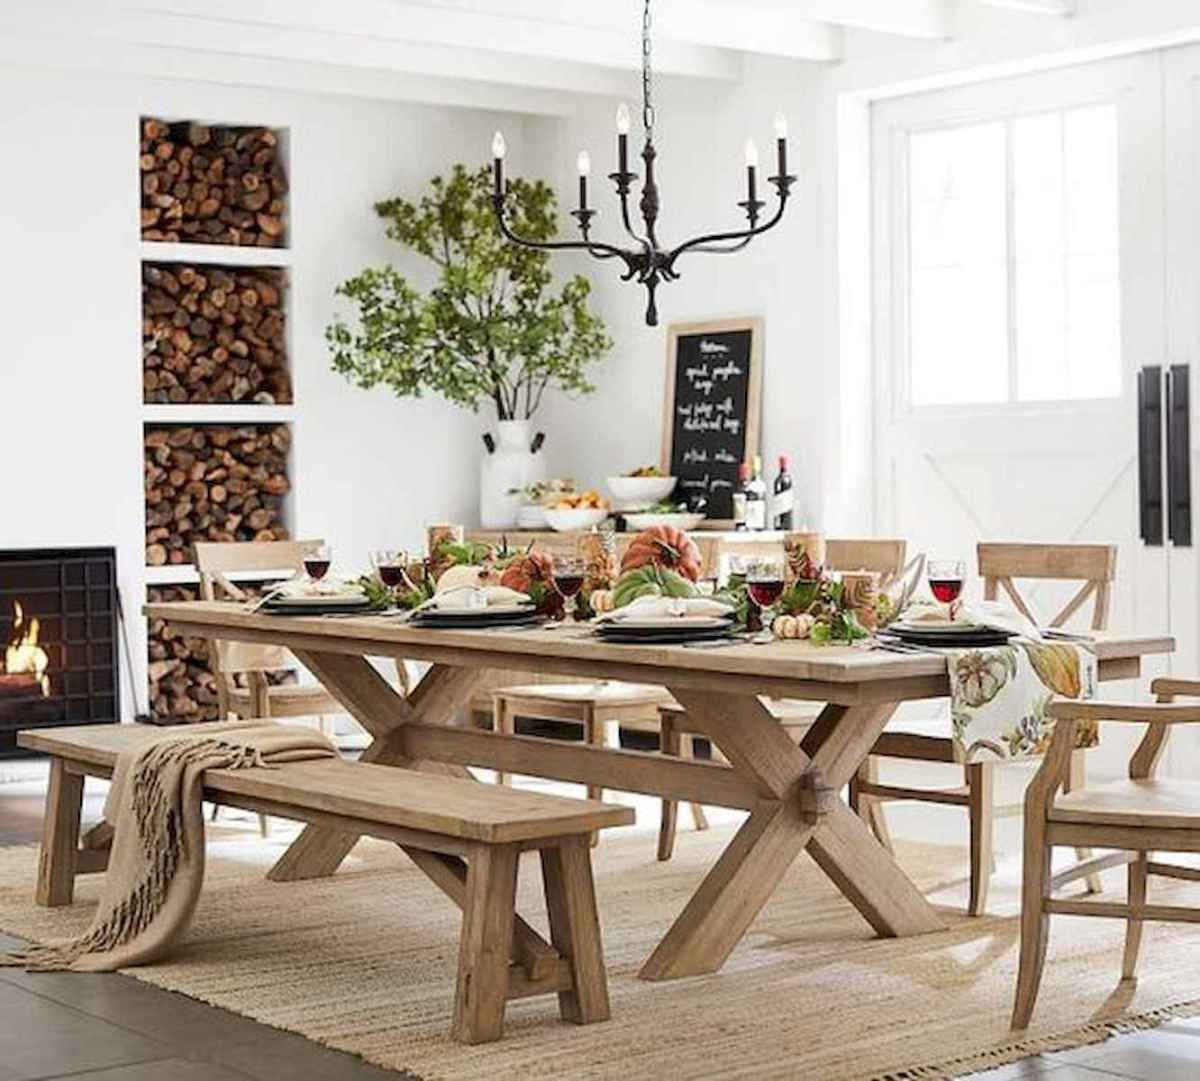 55 Stunning DIY Projects Furniture Tables Dining Rooms Design Ideas (14)